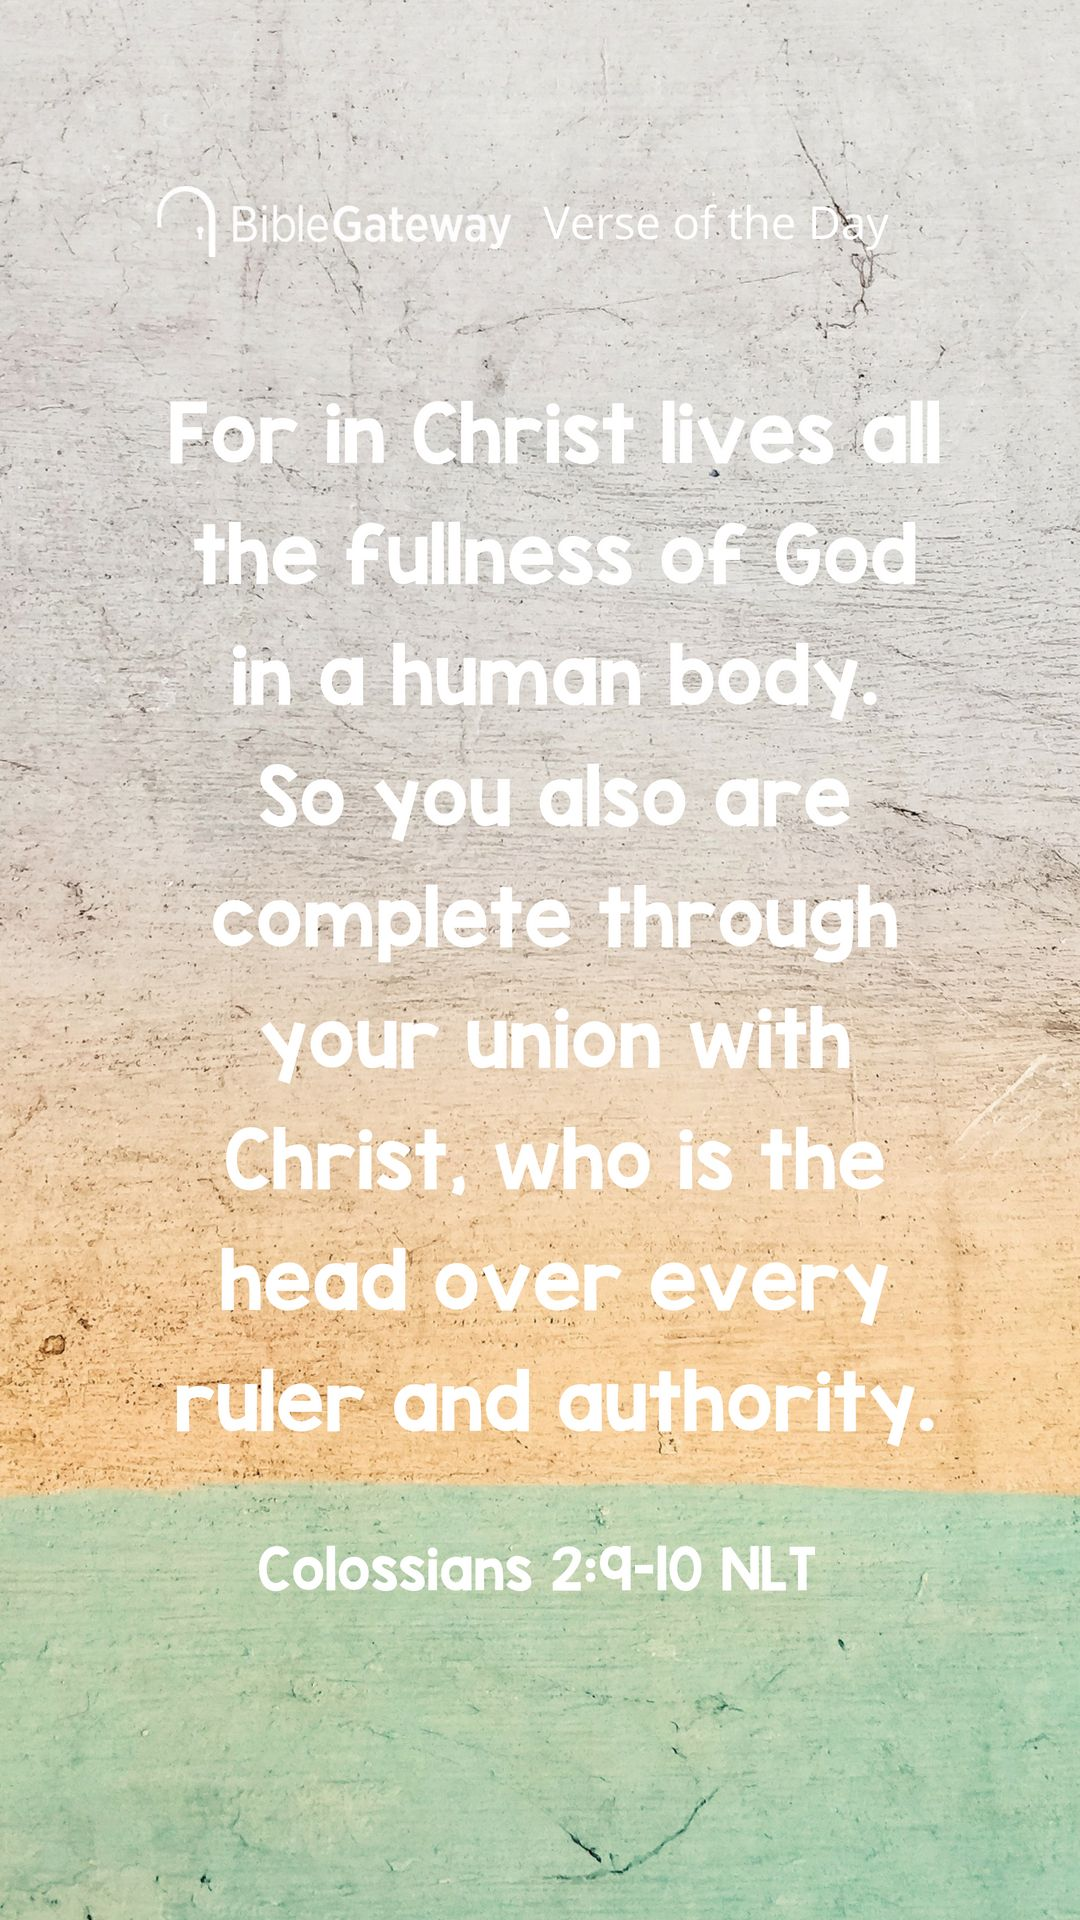 For in Christ lives all the fullness of God in a human body  So you